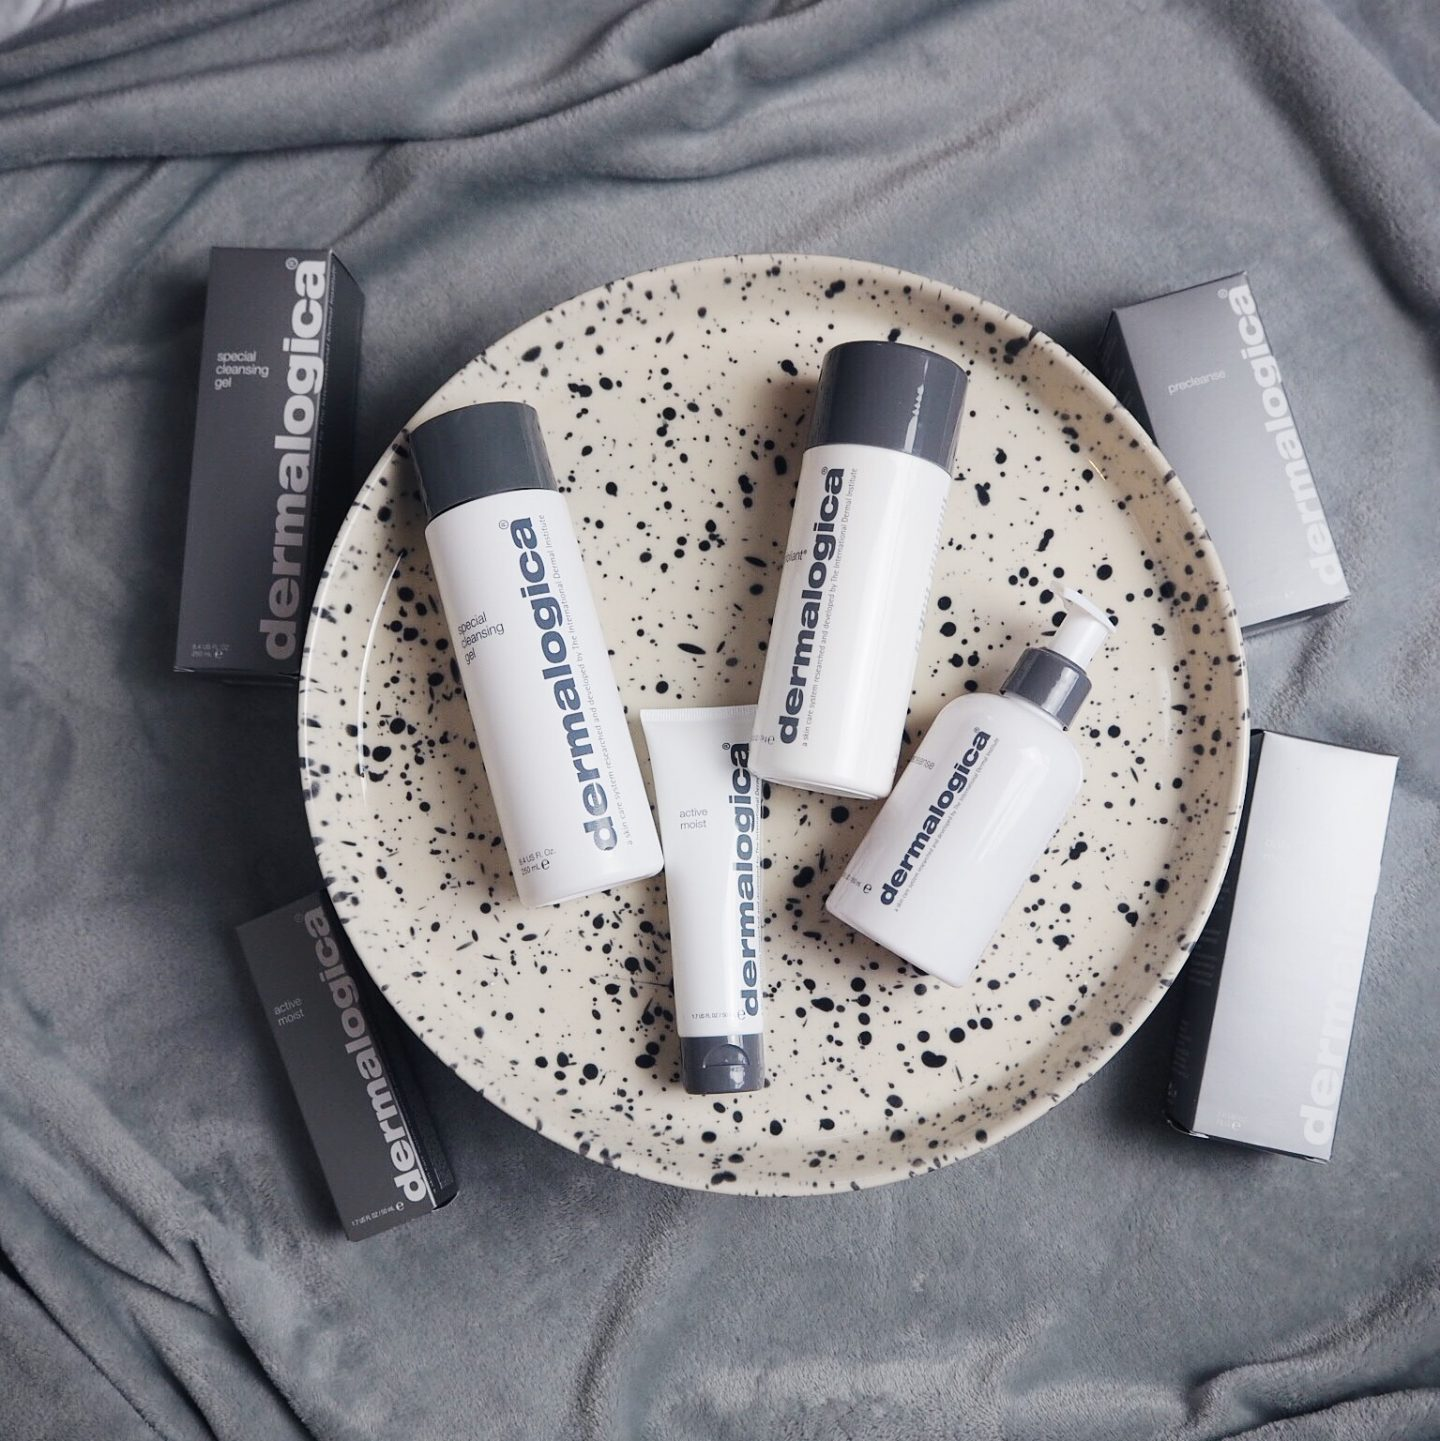 LAURA BYRNES, LAURAS LITTLE LOCKET, DERMALOGICA, EVERY FACE TELLS A STORY, DERMALOGICA REVIEW